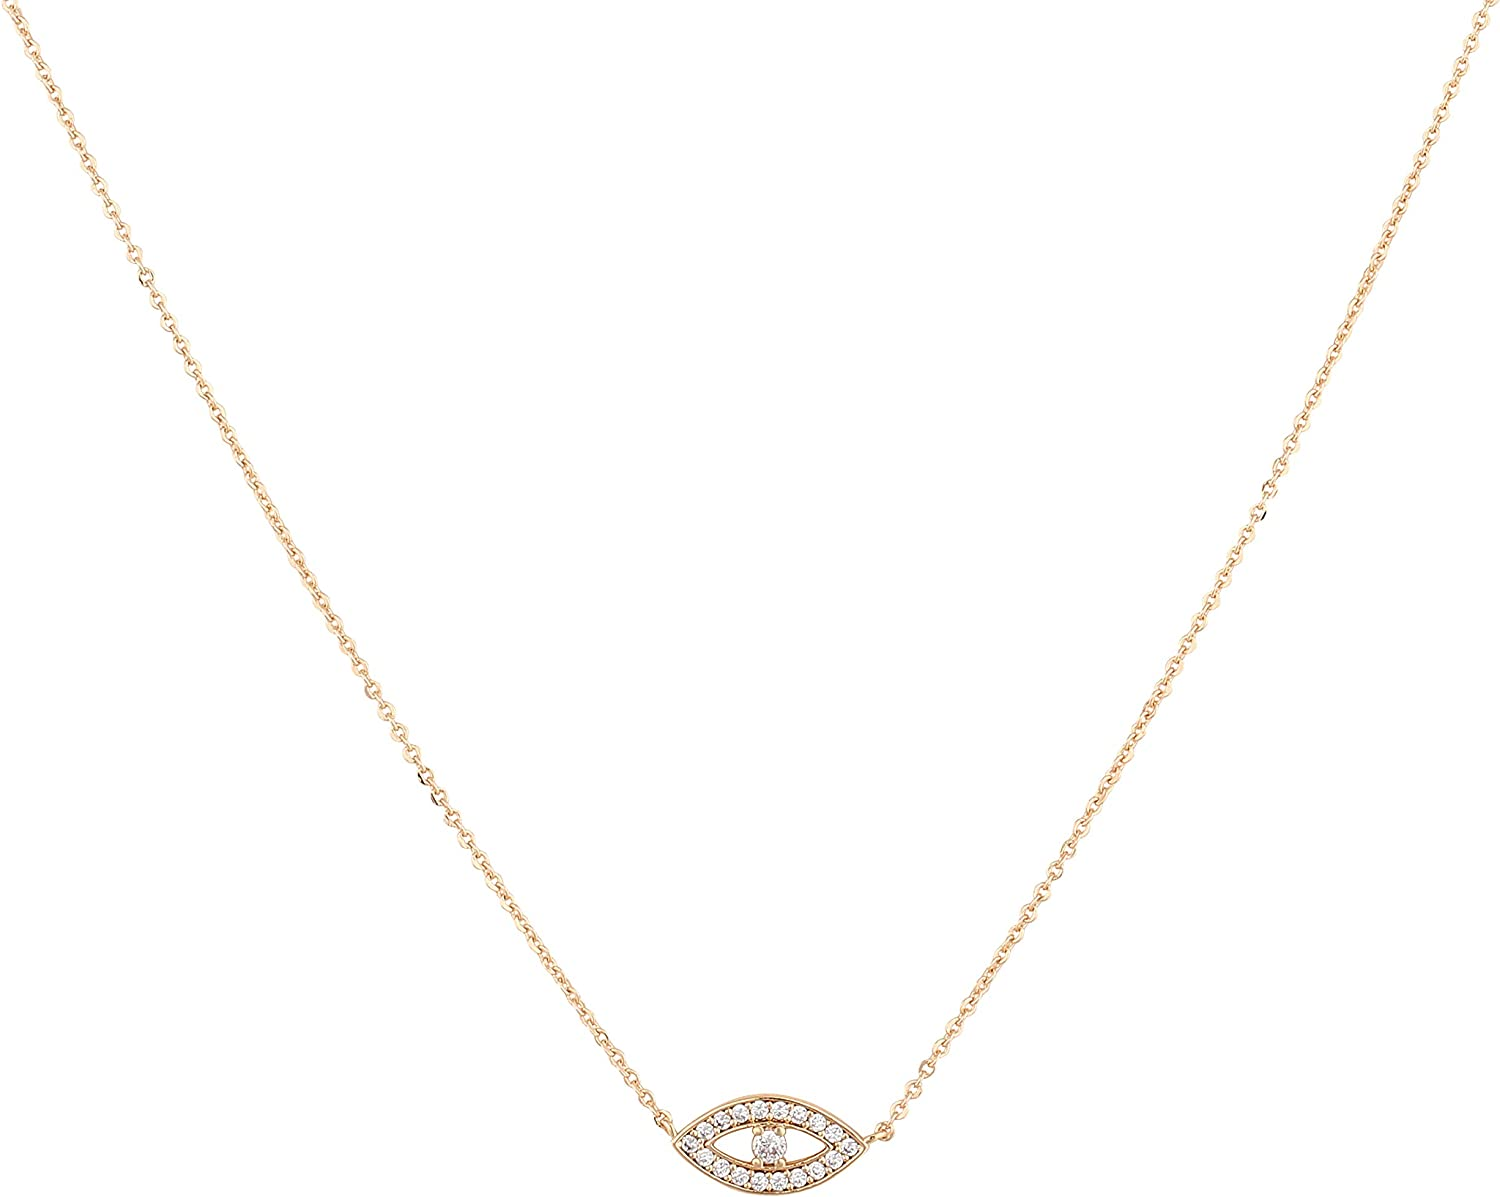 MEVECCO Gold Dainty Evil Eye Necklace for Women 18K Gold Plated Cute Delicate Solitaire Cubic Zirconia Boho Protection Evil Eye Minimalist Simple Necklace Gift